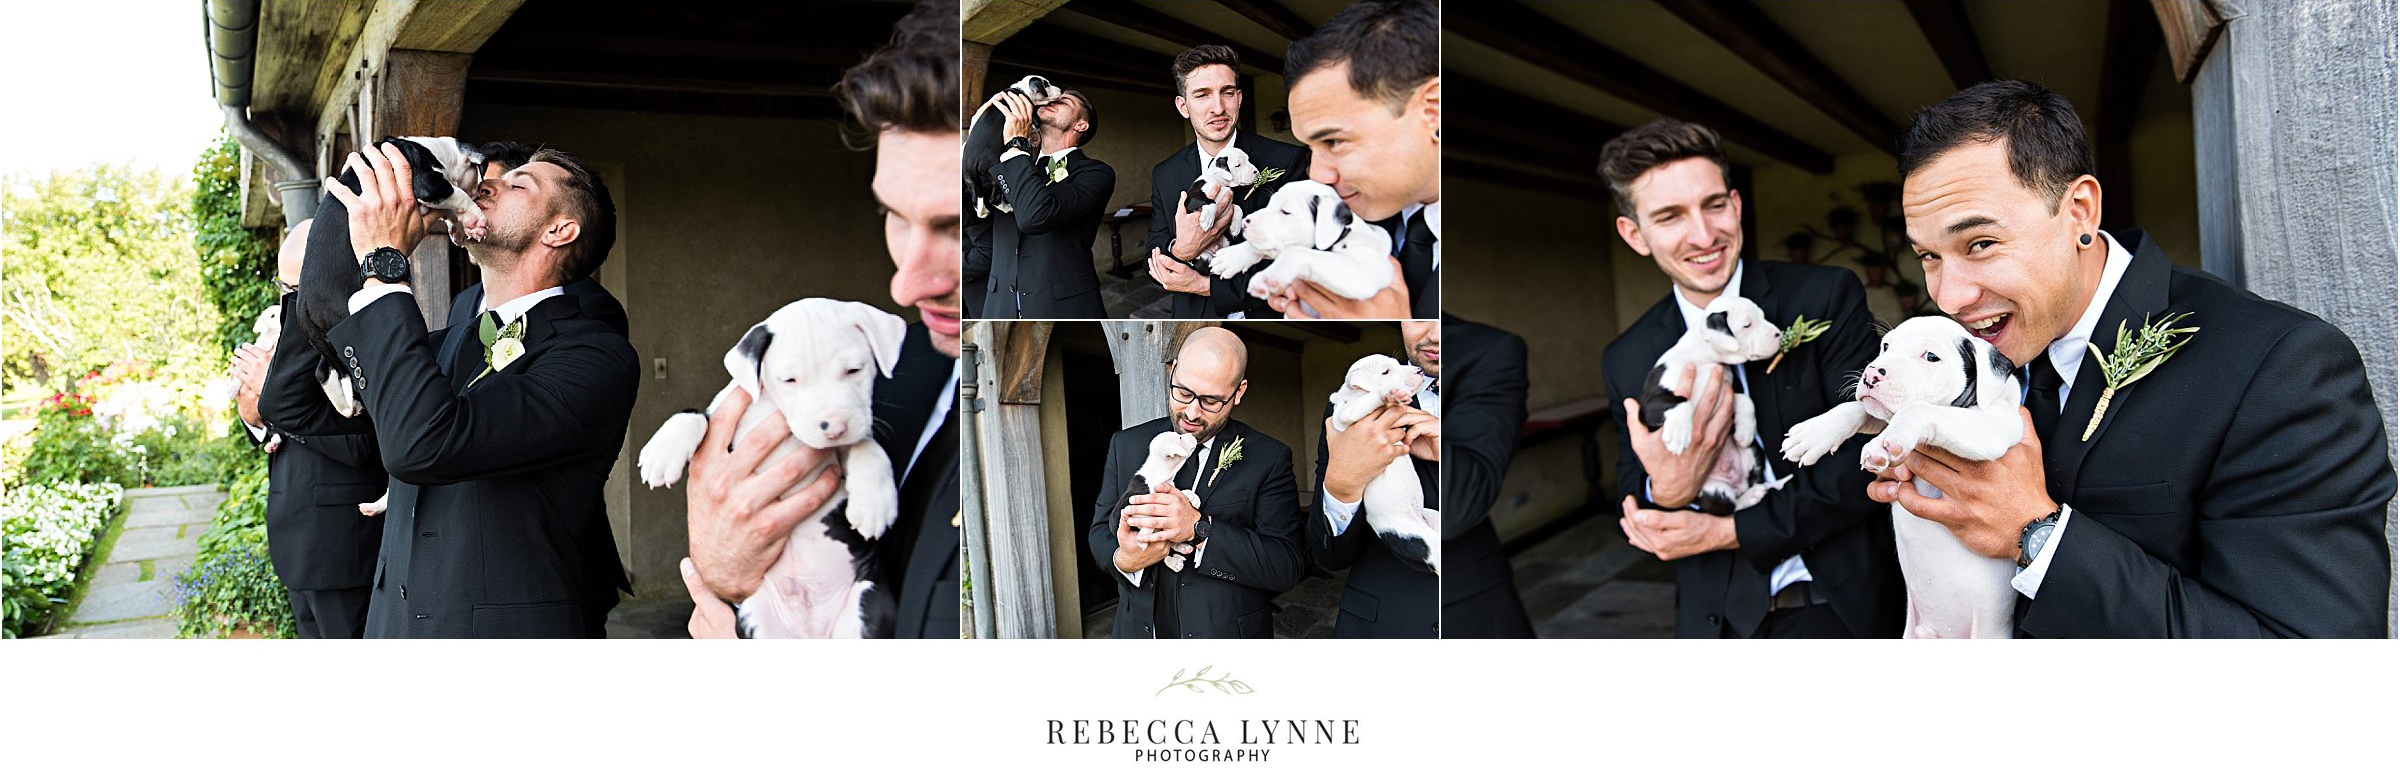 crazy adorable groom and groomsmen with puppies during wedding photography